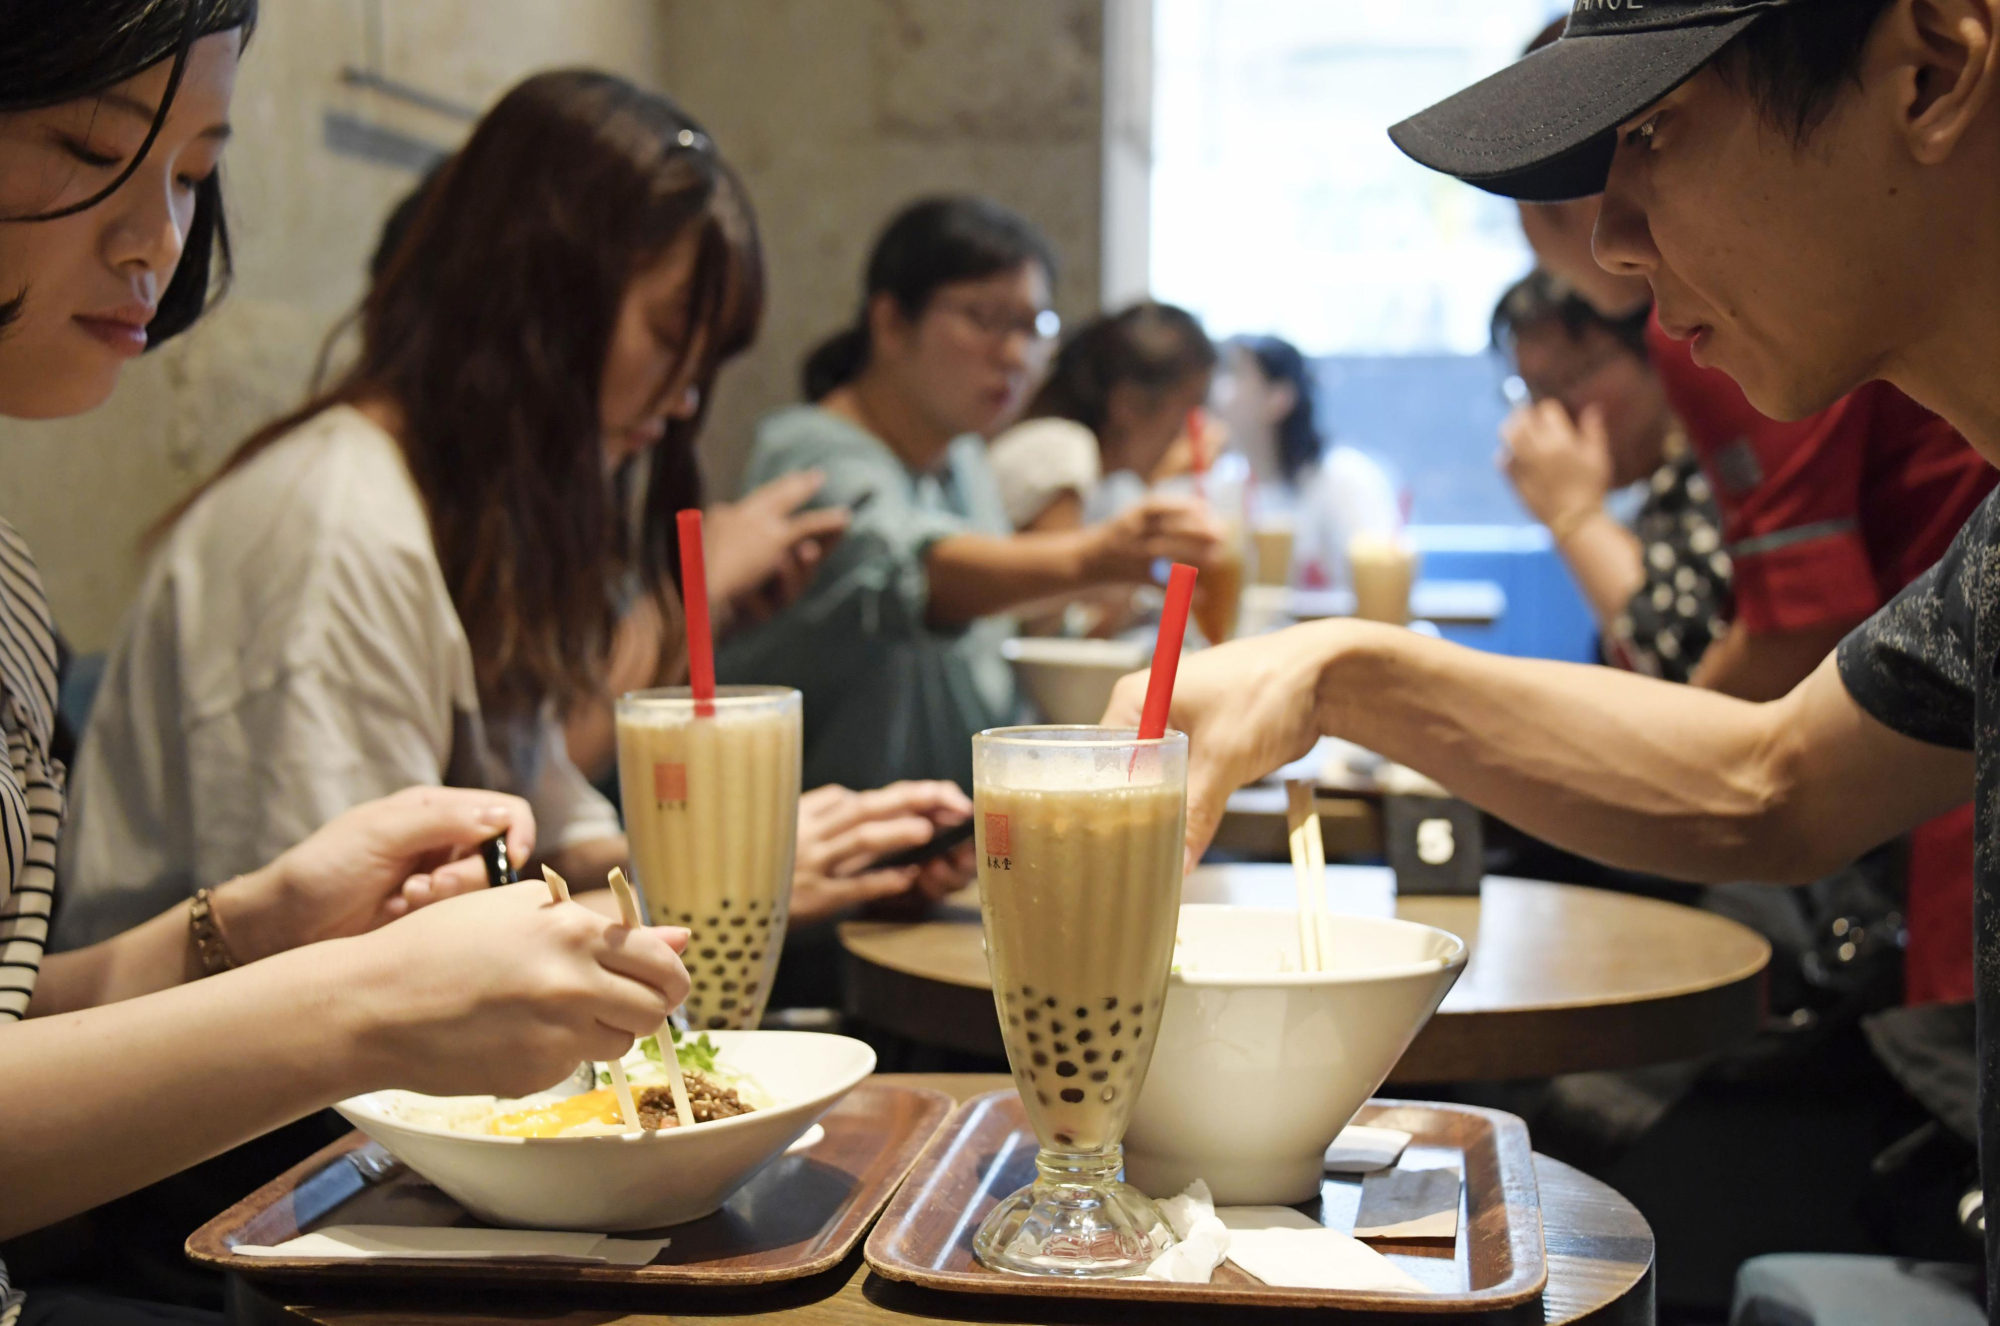 Squishy, chewy and filling: Customers enjoy bubble tea at one of Chun Shui Tang's Japan outlets. The Taiwanese tea shop claims to have invented bubble milk tea.   KYODO